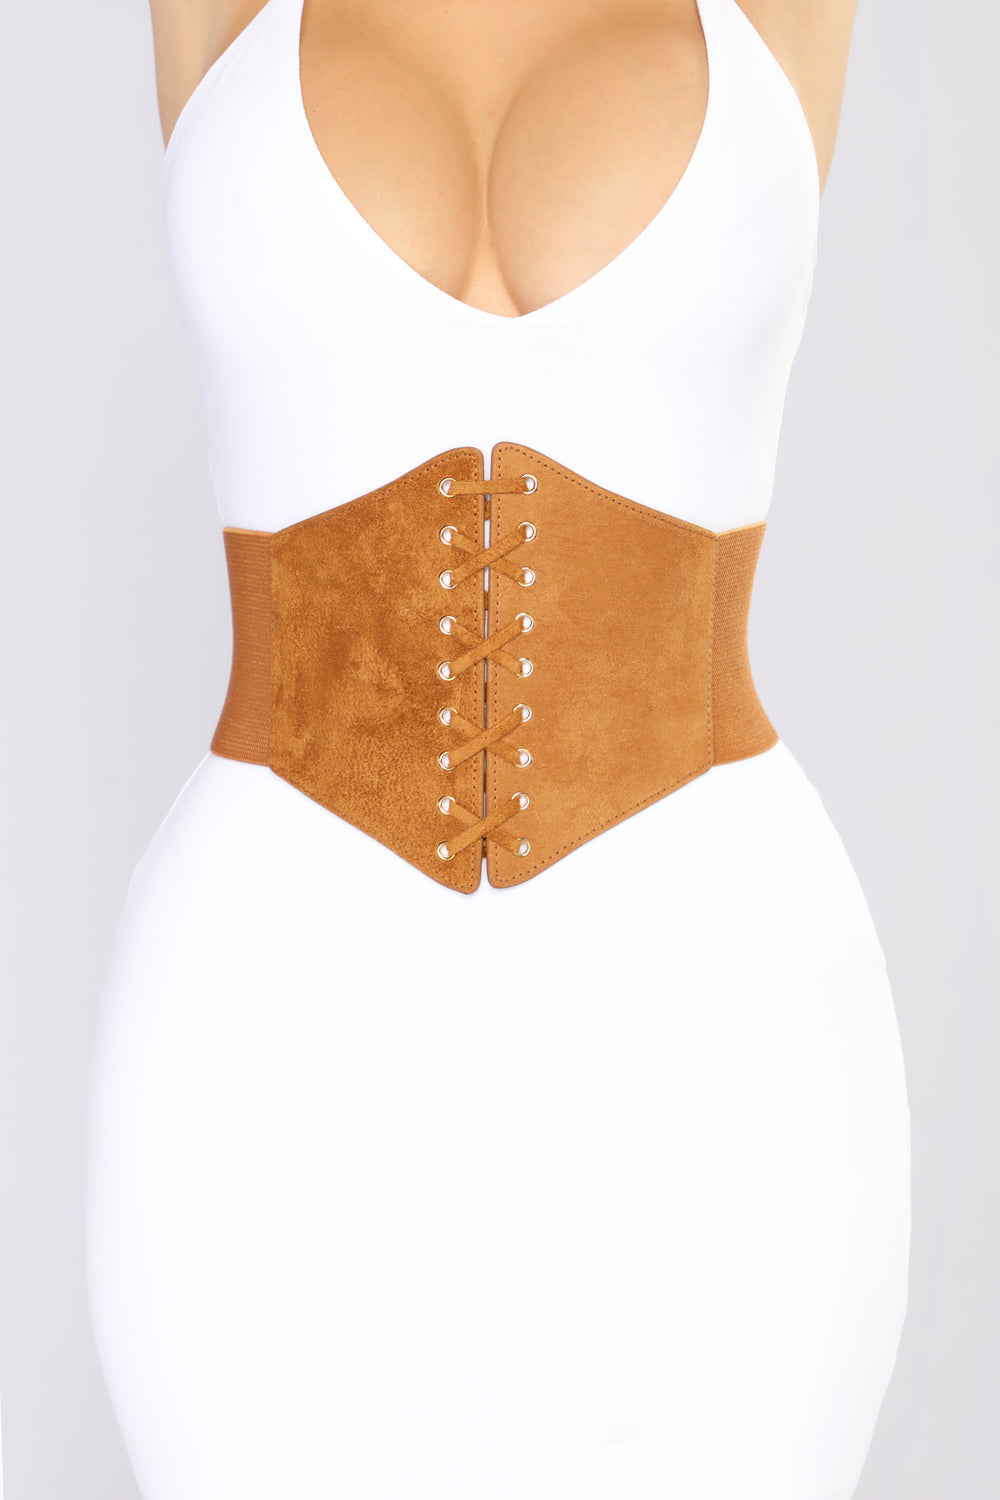 Everything I Need Corset Belt - Tan